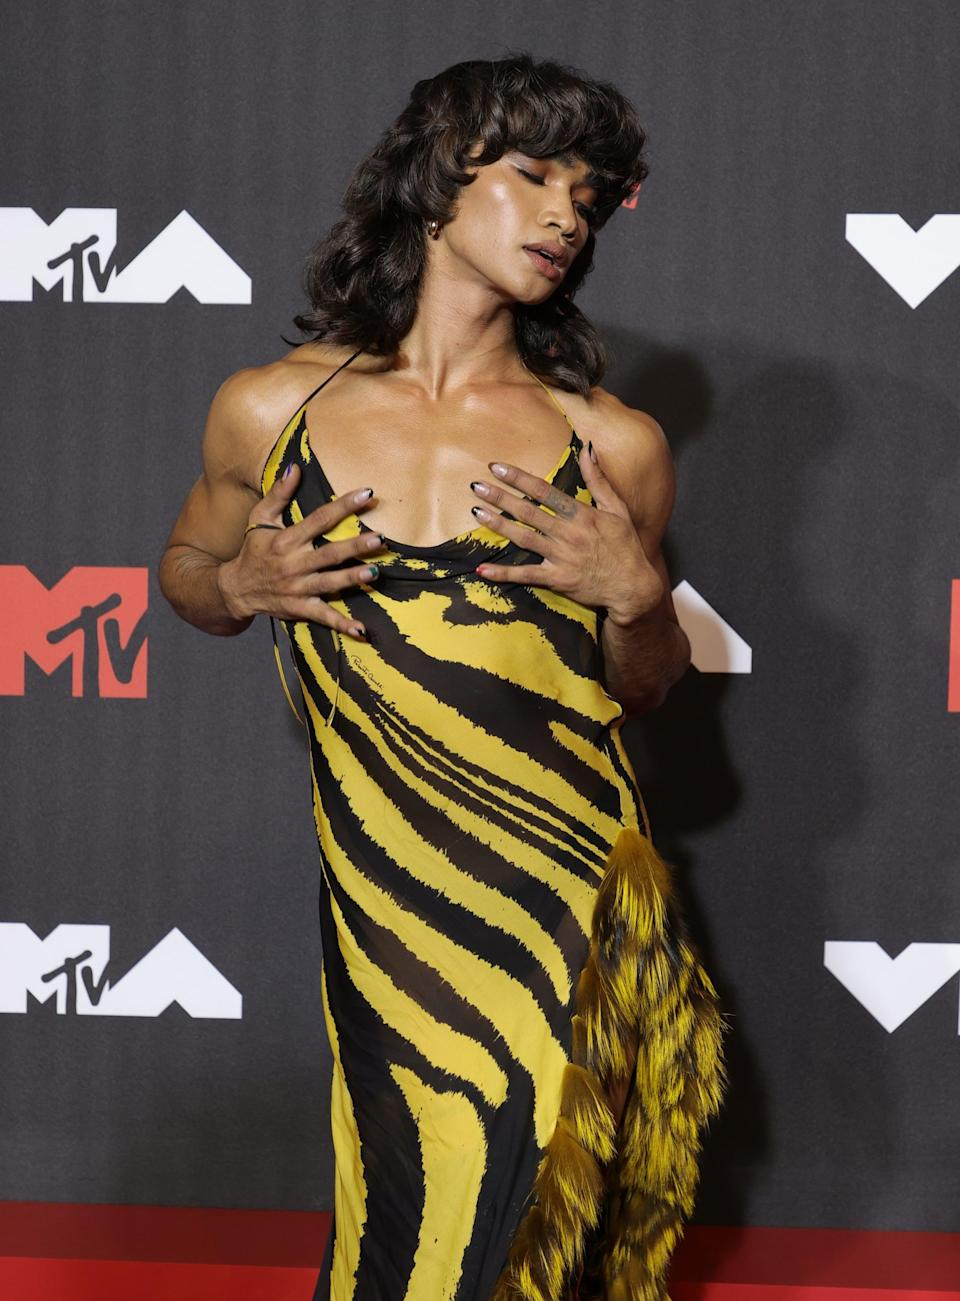 NEW YORK, NEW YORK - SEPTEMBER 12: Bretman Rock attends the 2021 MTV Video Music Awards at Barclays Center on September 12, 2021 in the Brooklyn borough of New York City. (Photo by Jamie McCarthy/Getty Images for MTV/ ViacomCBS)